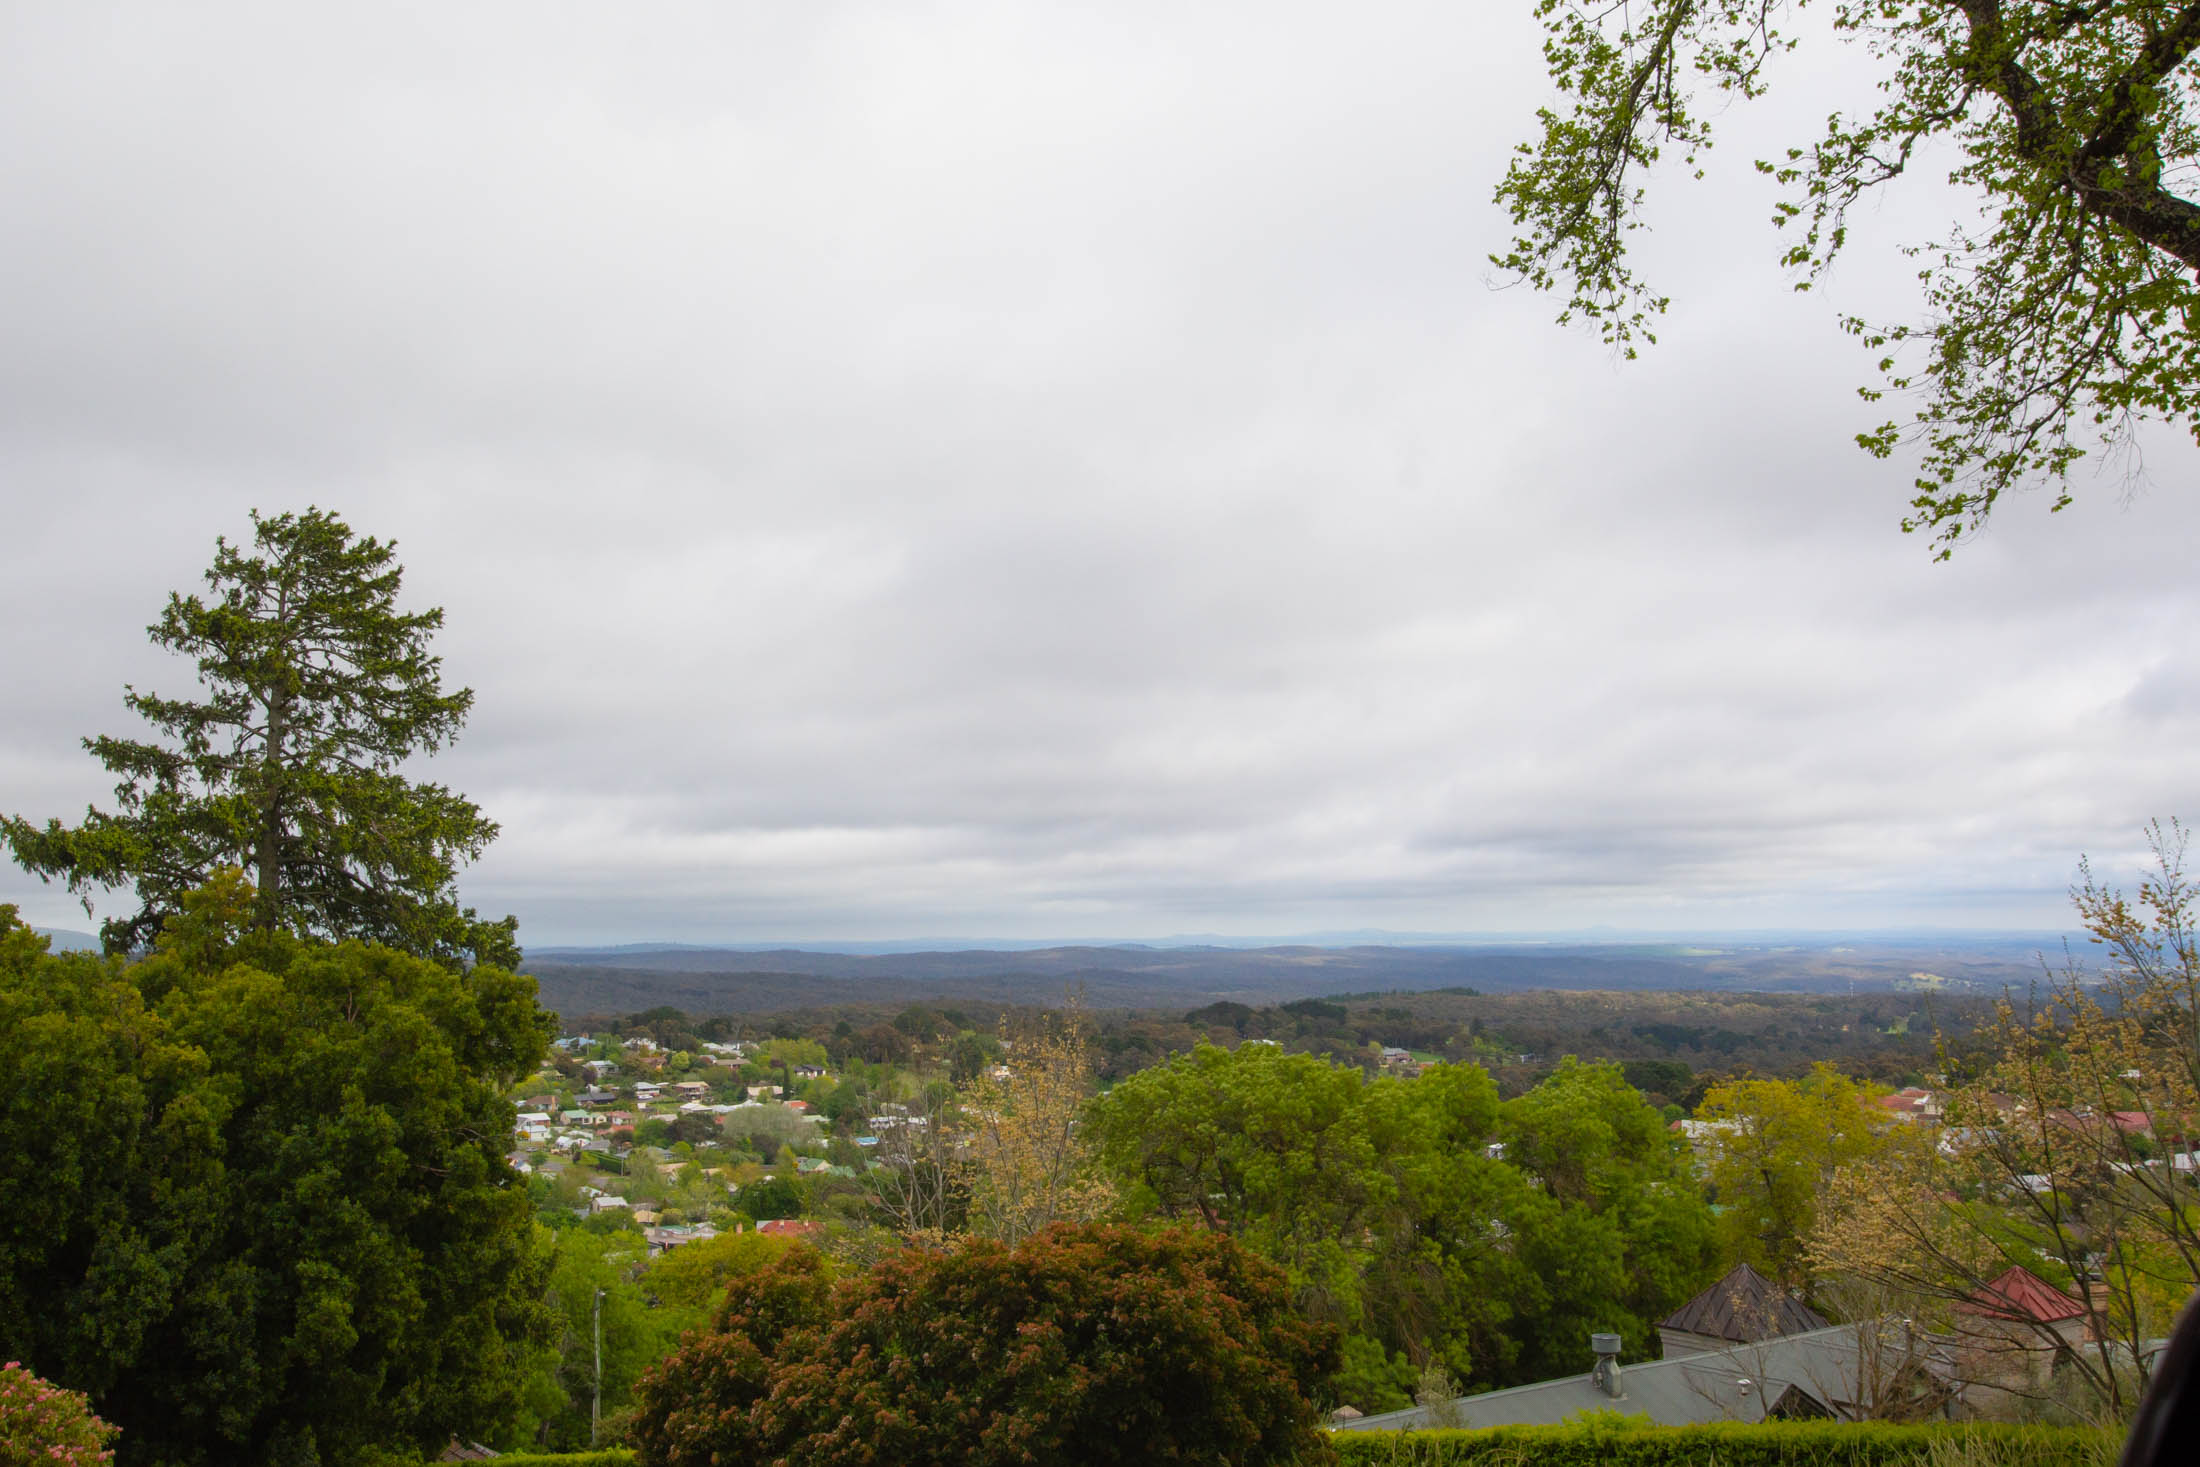 View when leaving Wombat Hill botanic gardens